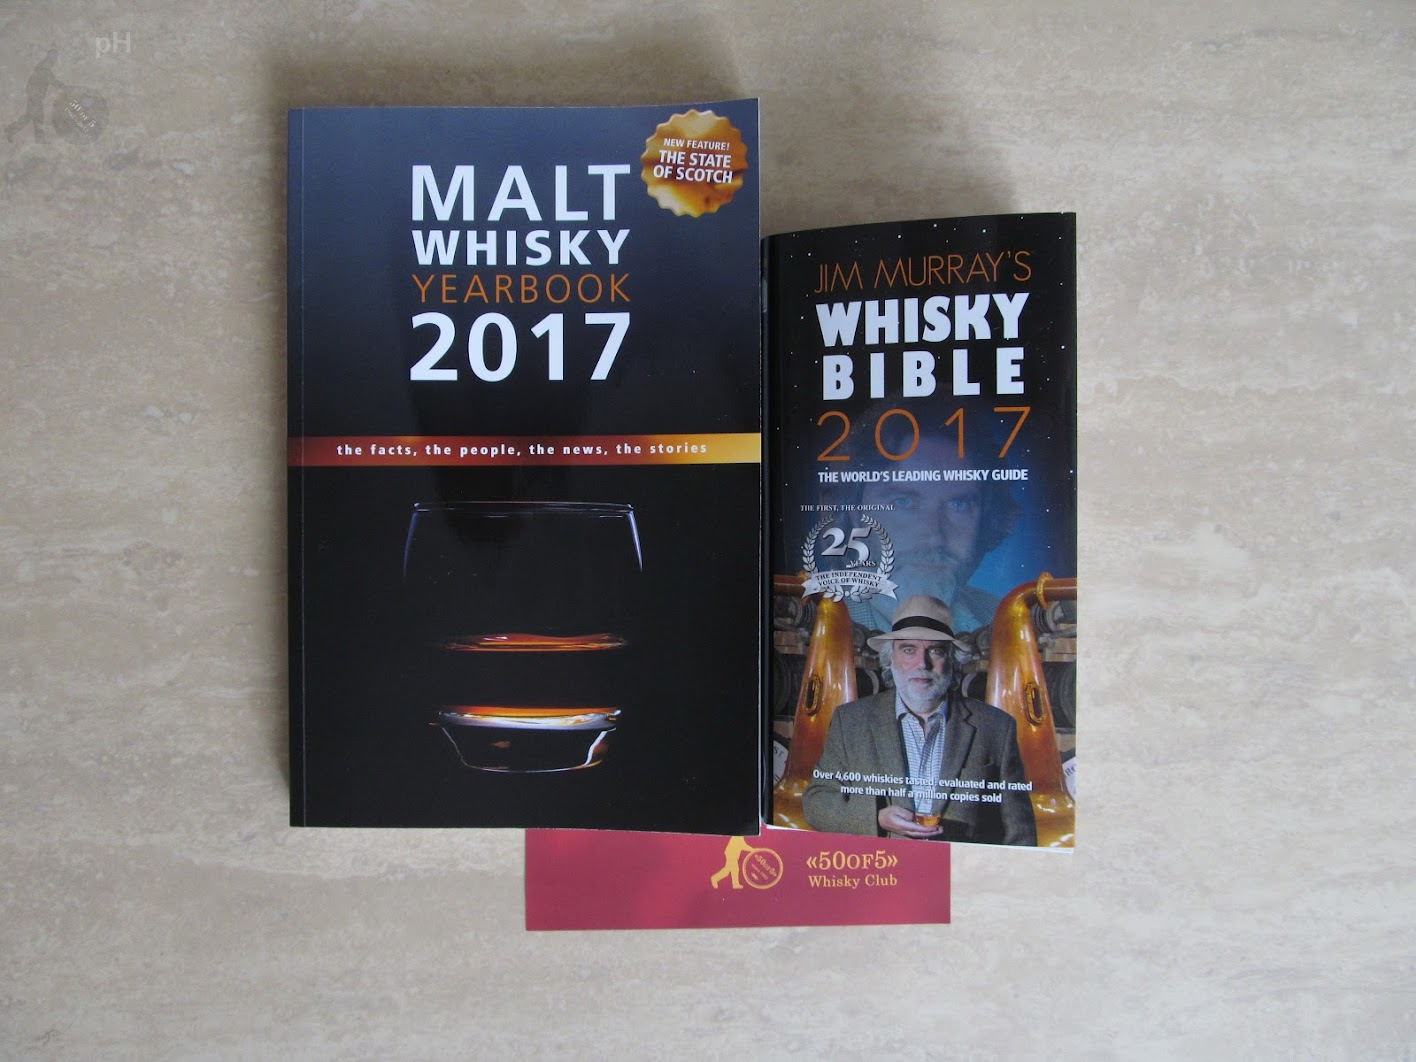 Malt Whisky yearbook 2016, Whisky Bible 2017